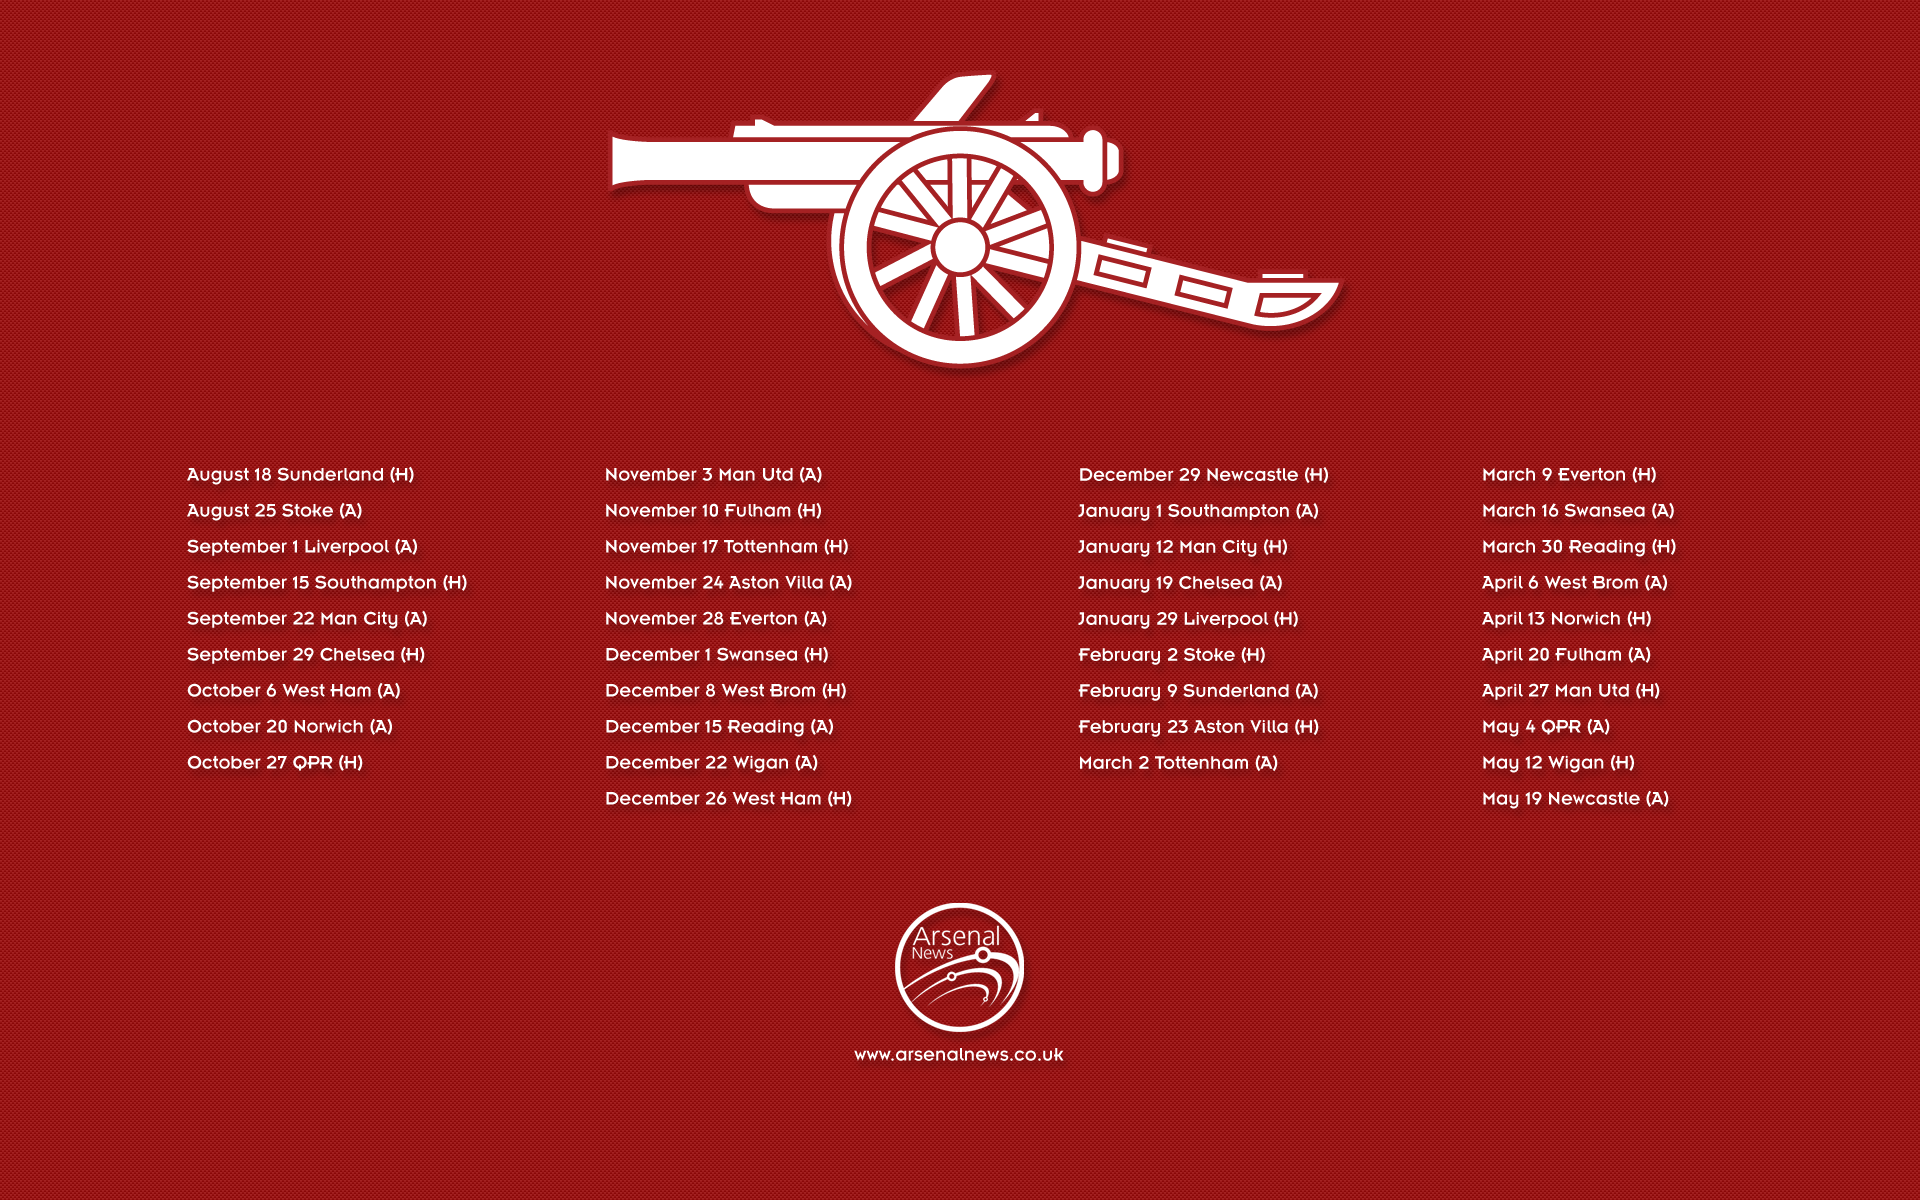 Arsenal 80590 Hd Wallpapers Image